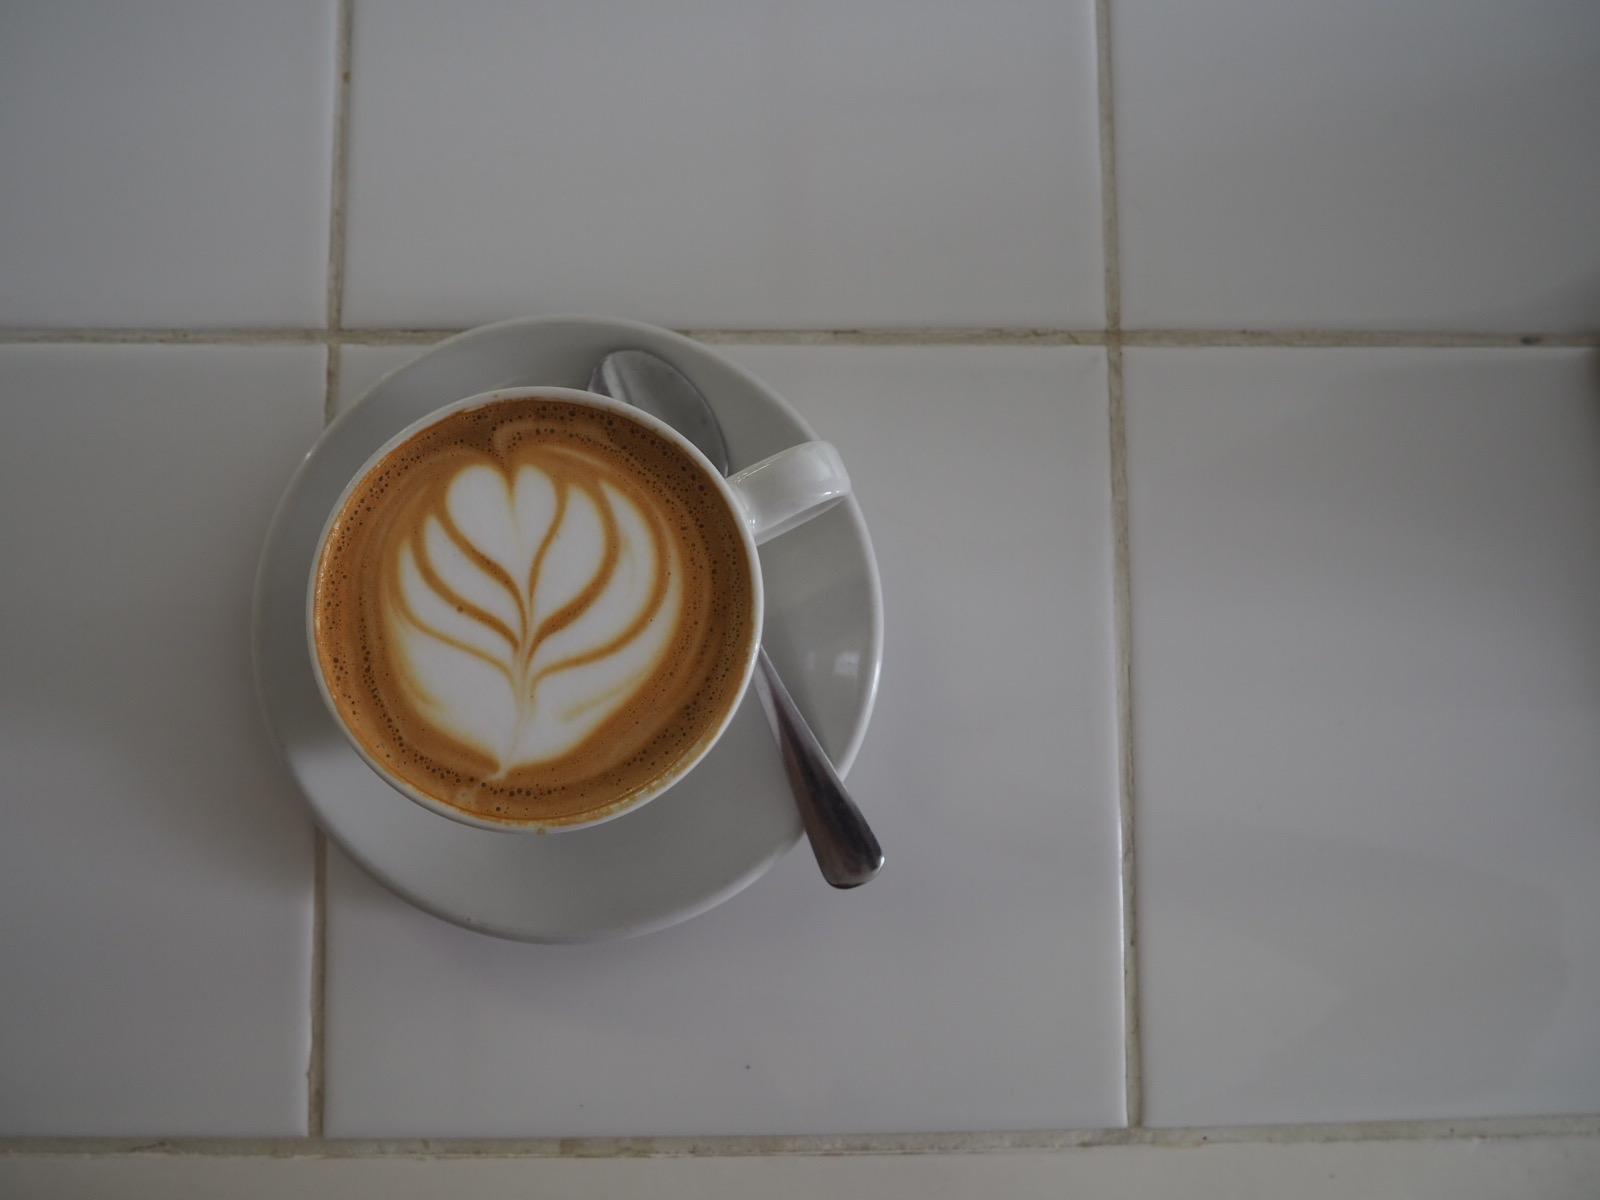 Best Coffee in Cape Town